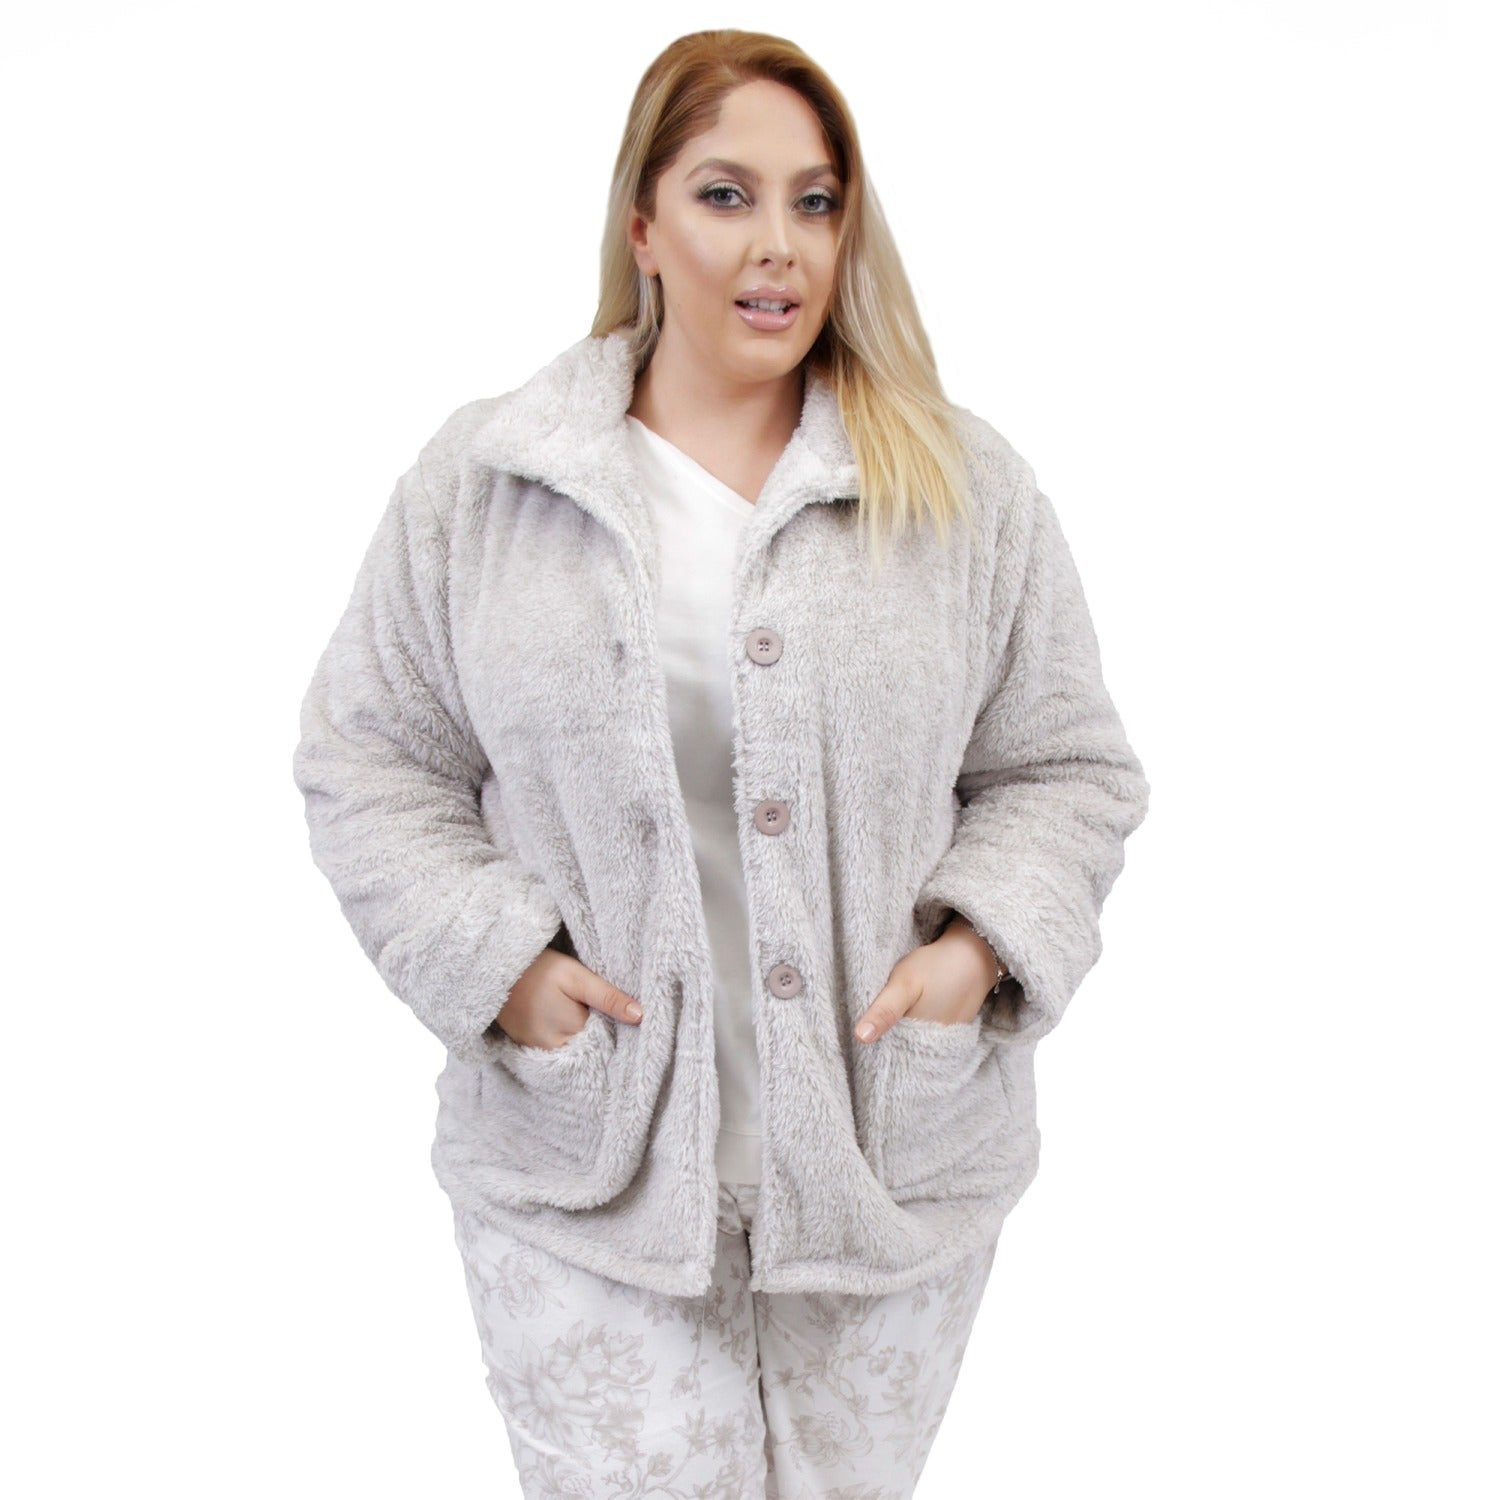 efcf8ec928974 Shop La Cera Women s Plus Size Cowl Neck Bed Jacket - Free Shipping Today -  Overstock - 10914192